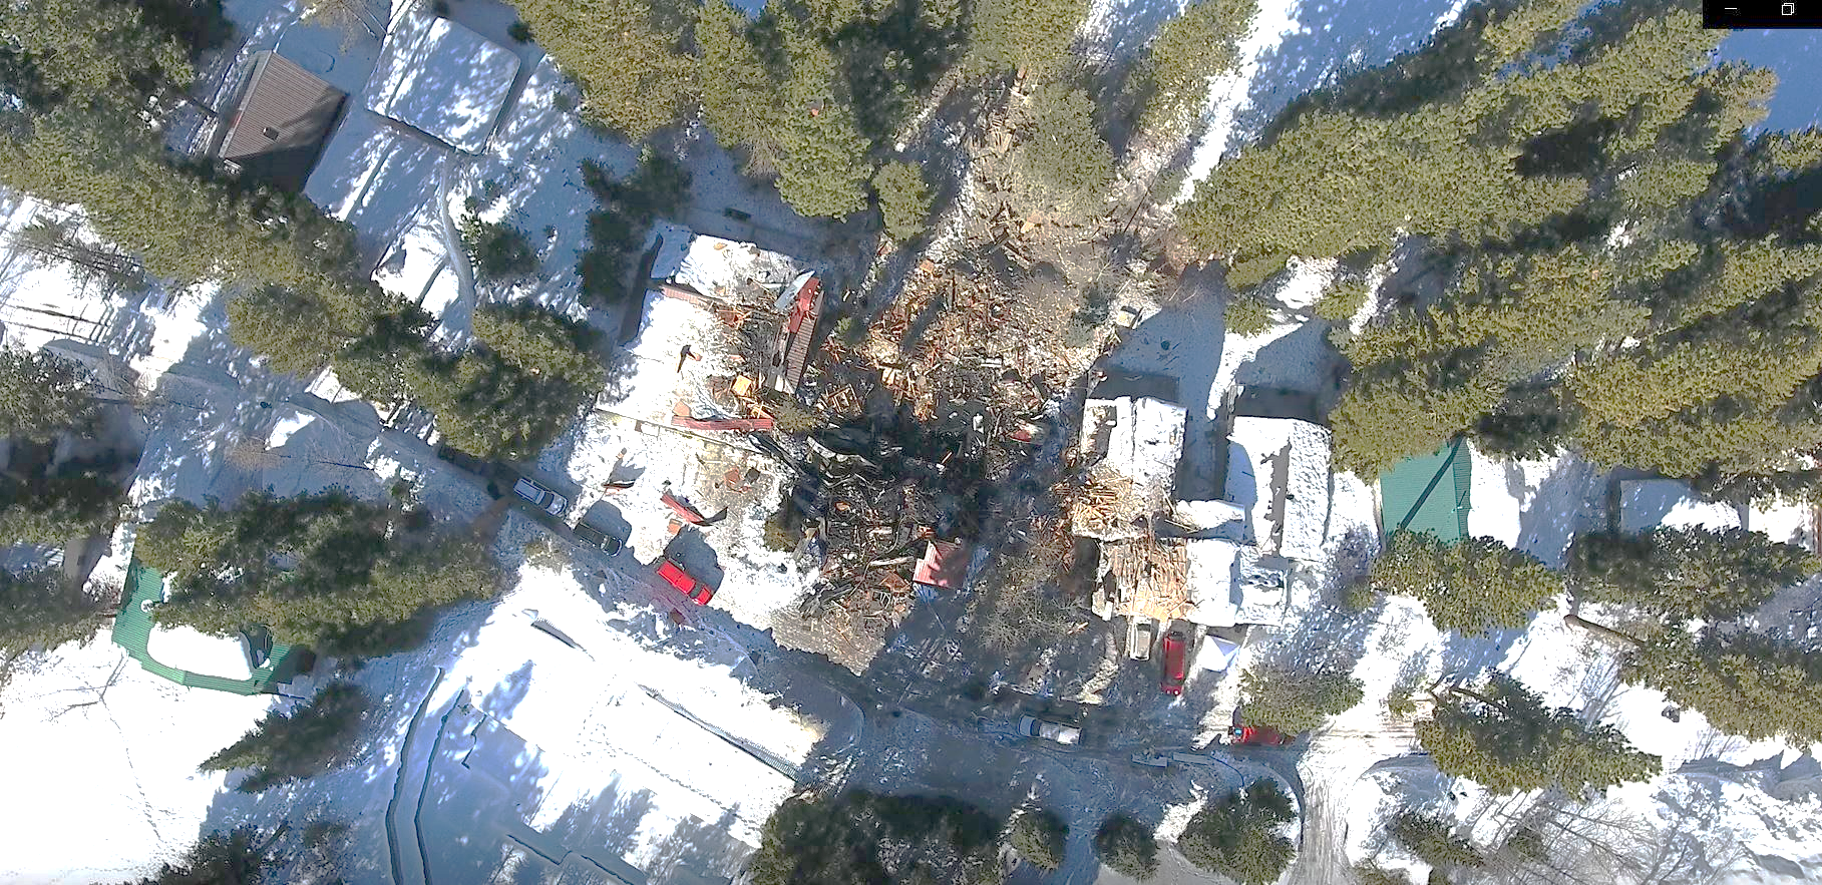 Deadly house explosion in McCall caused by propane leak, fire marshal says. (Courtesy Idaho State Fire Marshal)